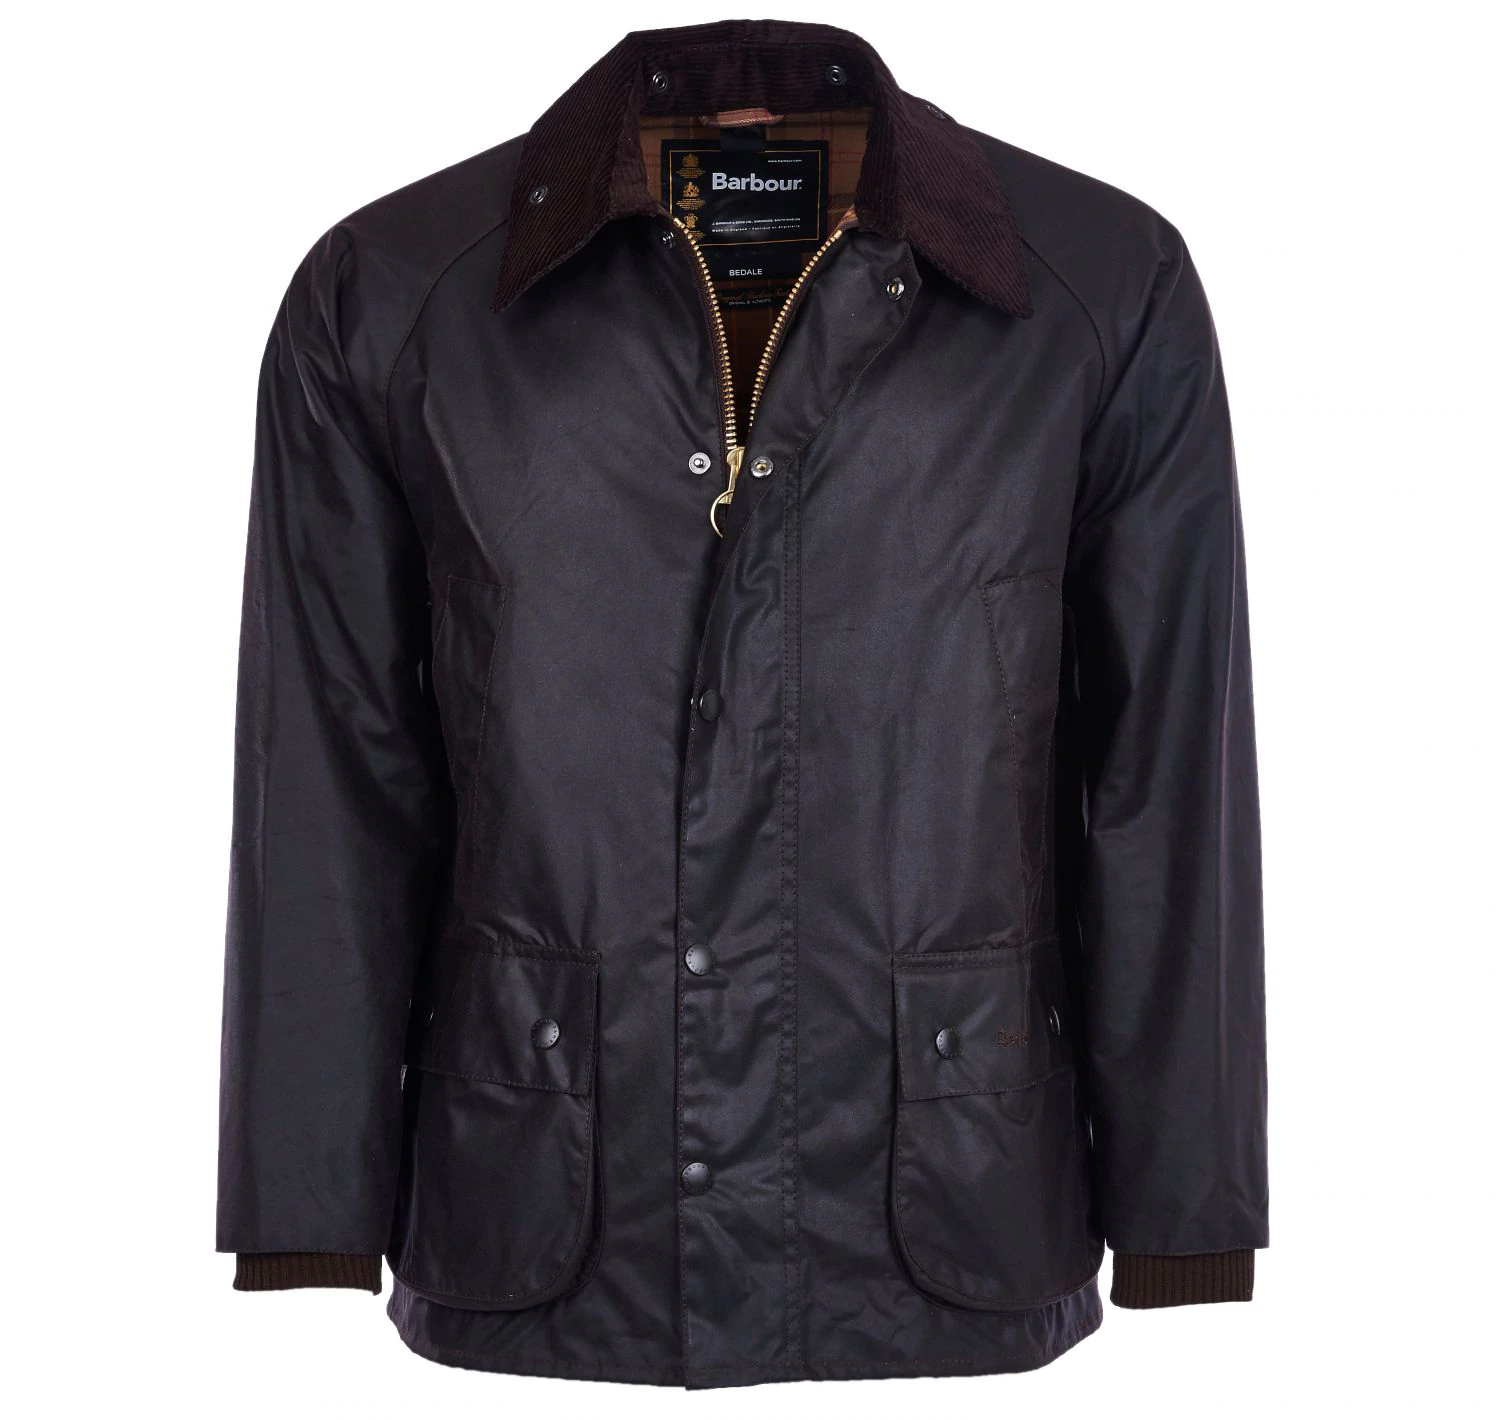 Barbour Bedale Jacket Rustic Barbour Lifestyle: from the Classic capsule